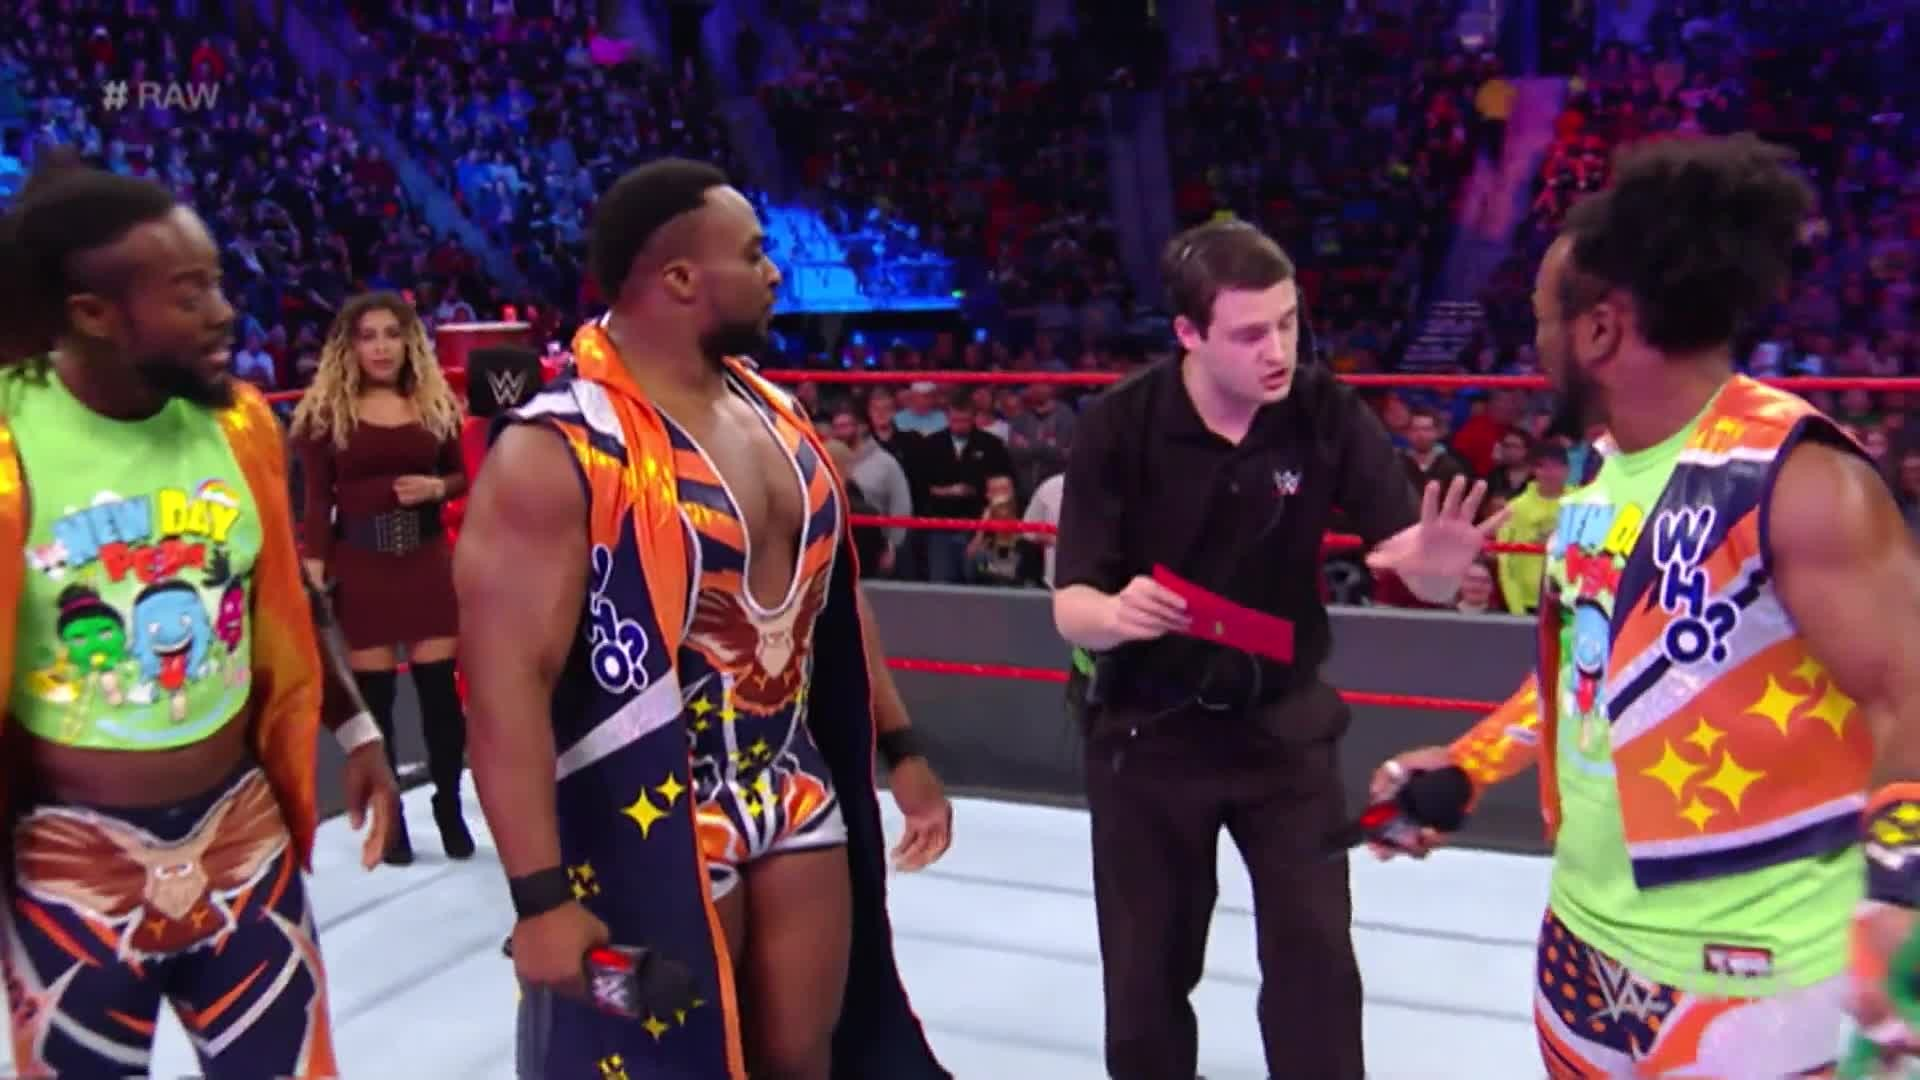 The Shining Stars were wrongly announced as The New Day's opponents on Raw  in scenes similar